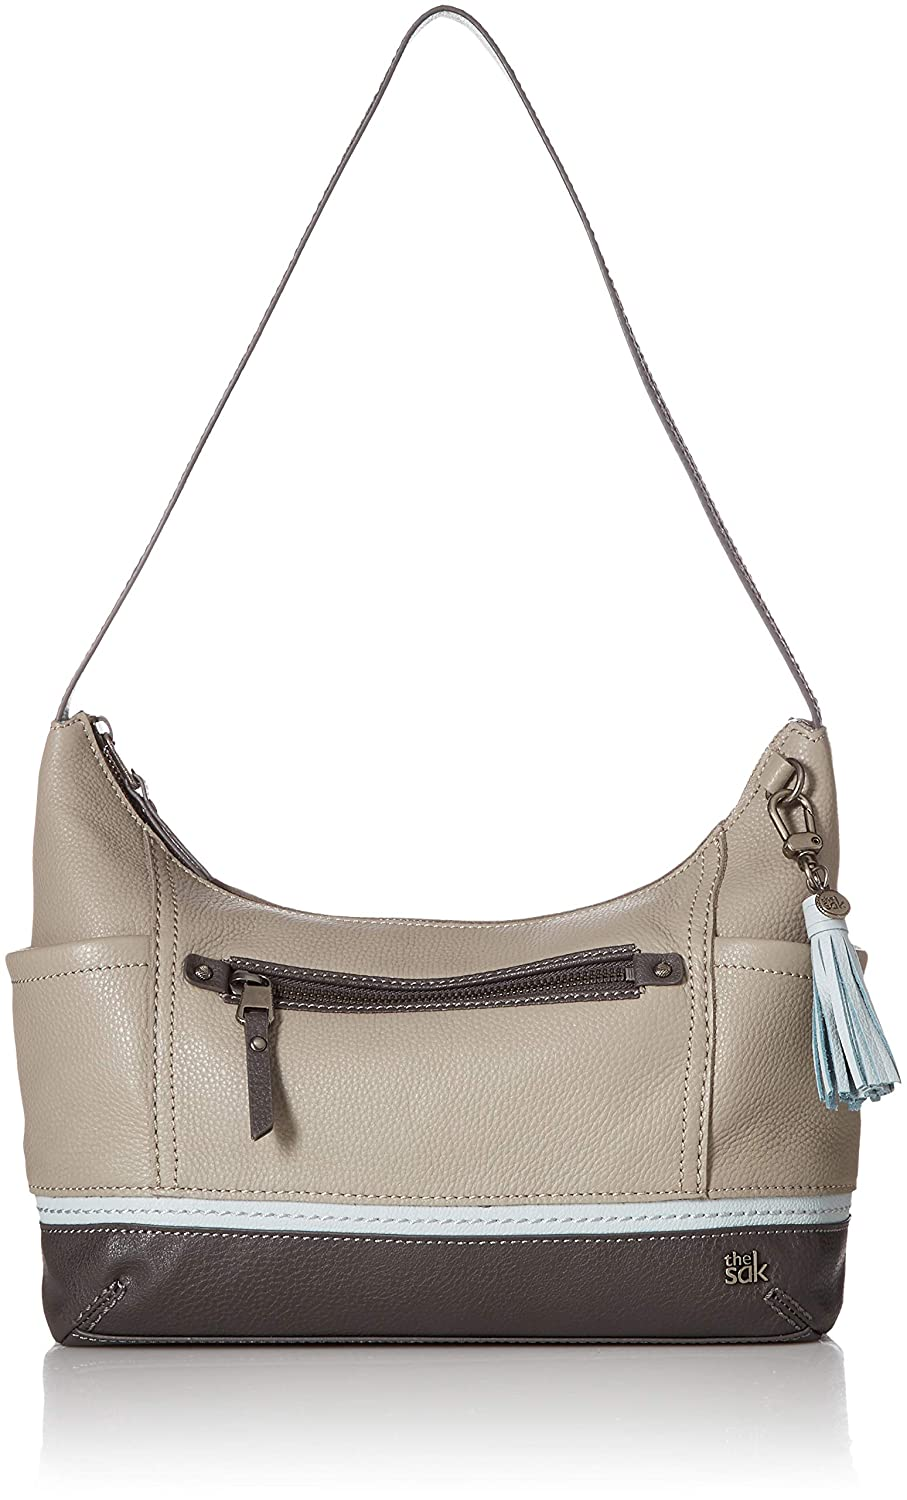 a47a7a6cea73 Amazon.com  The Sak Kendra Hobo